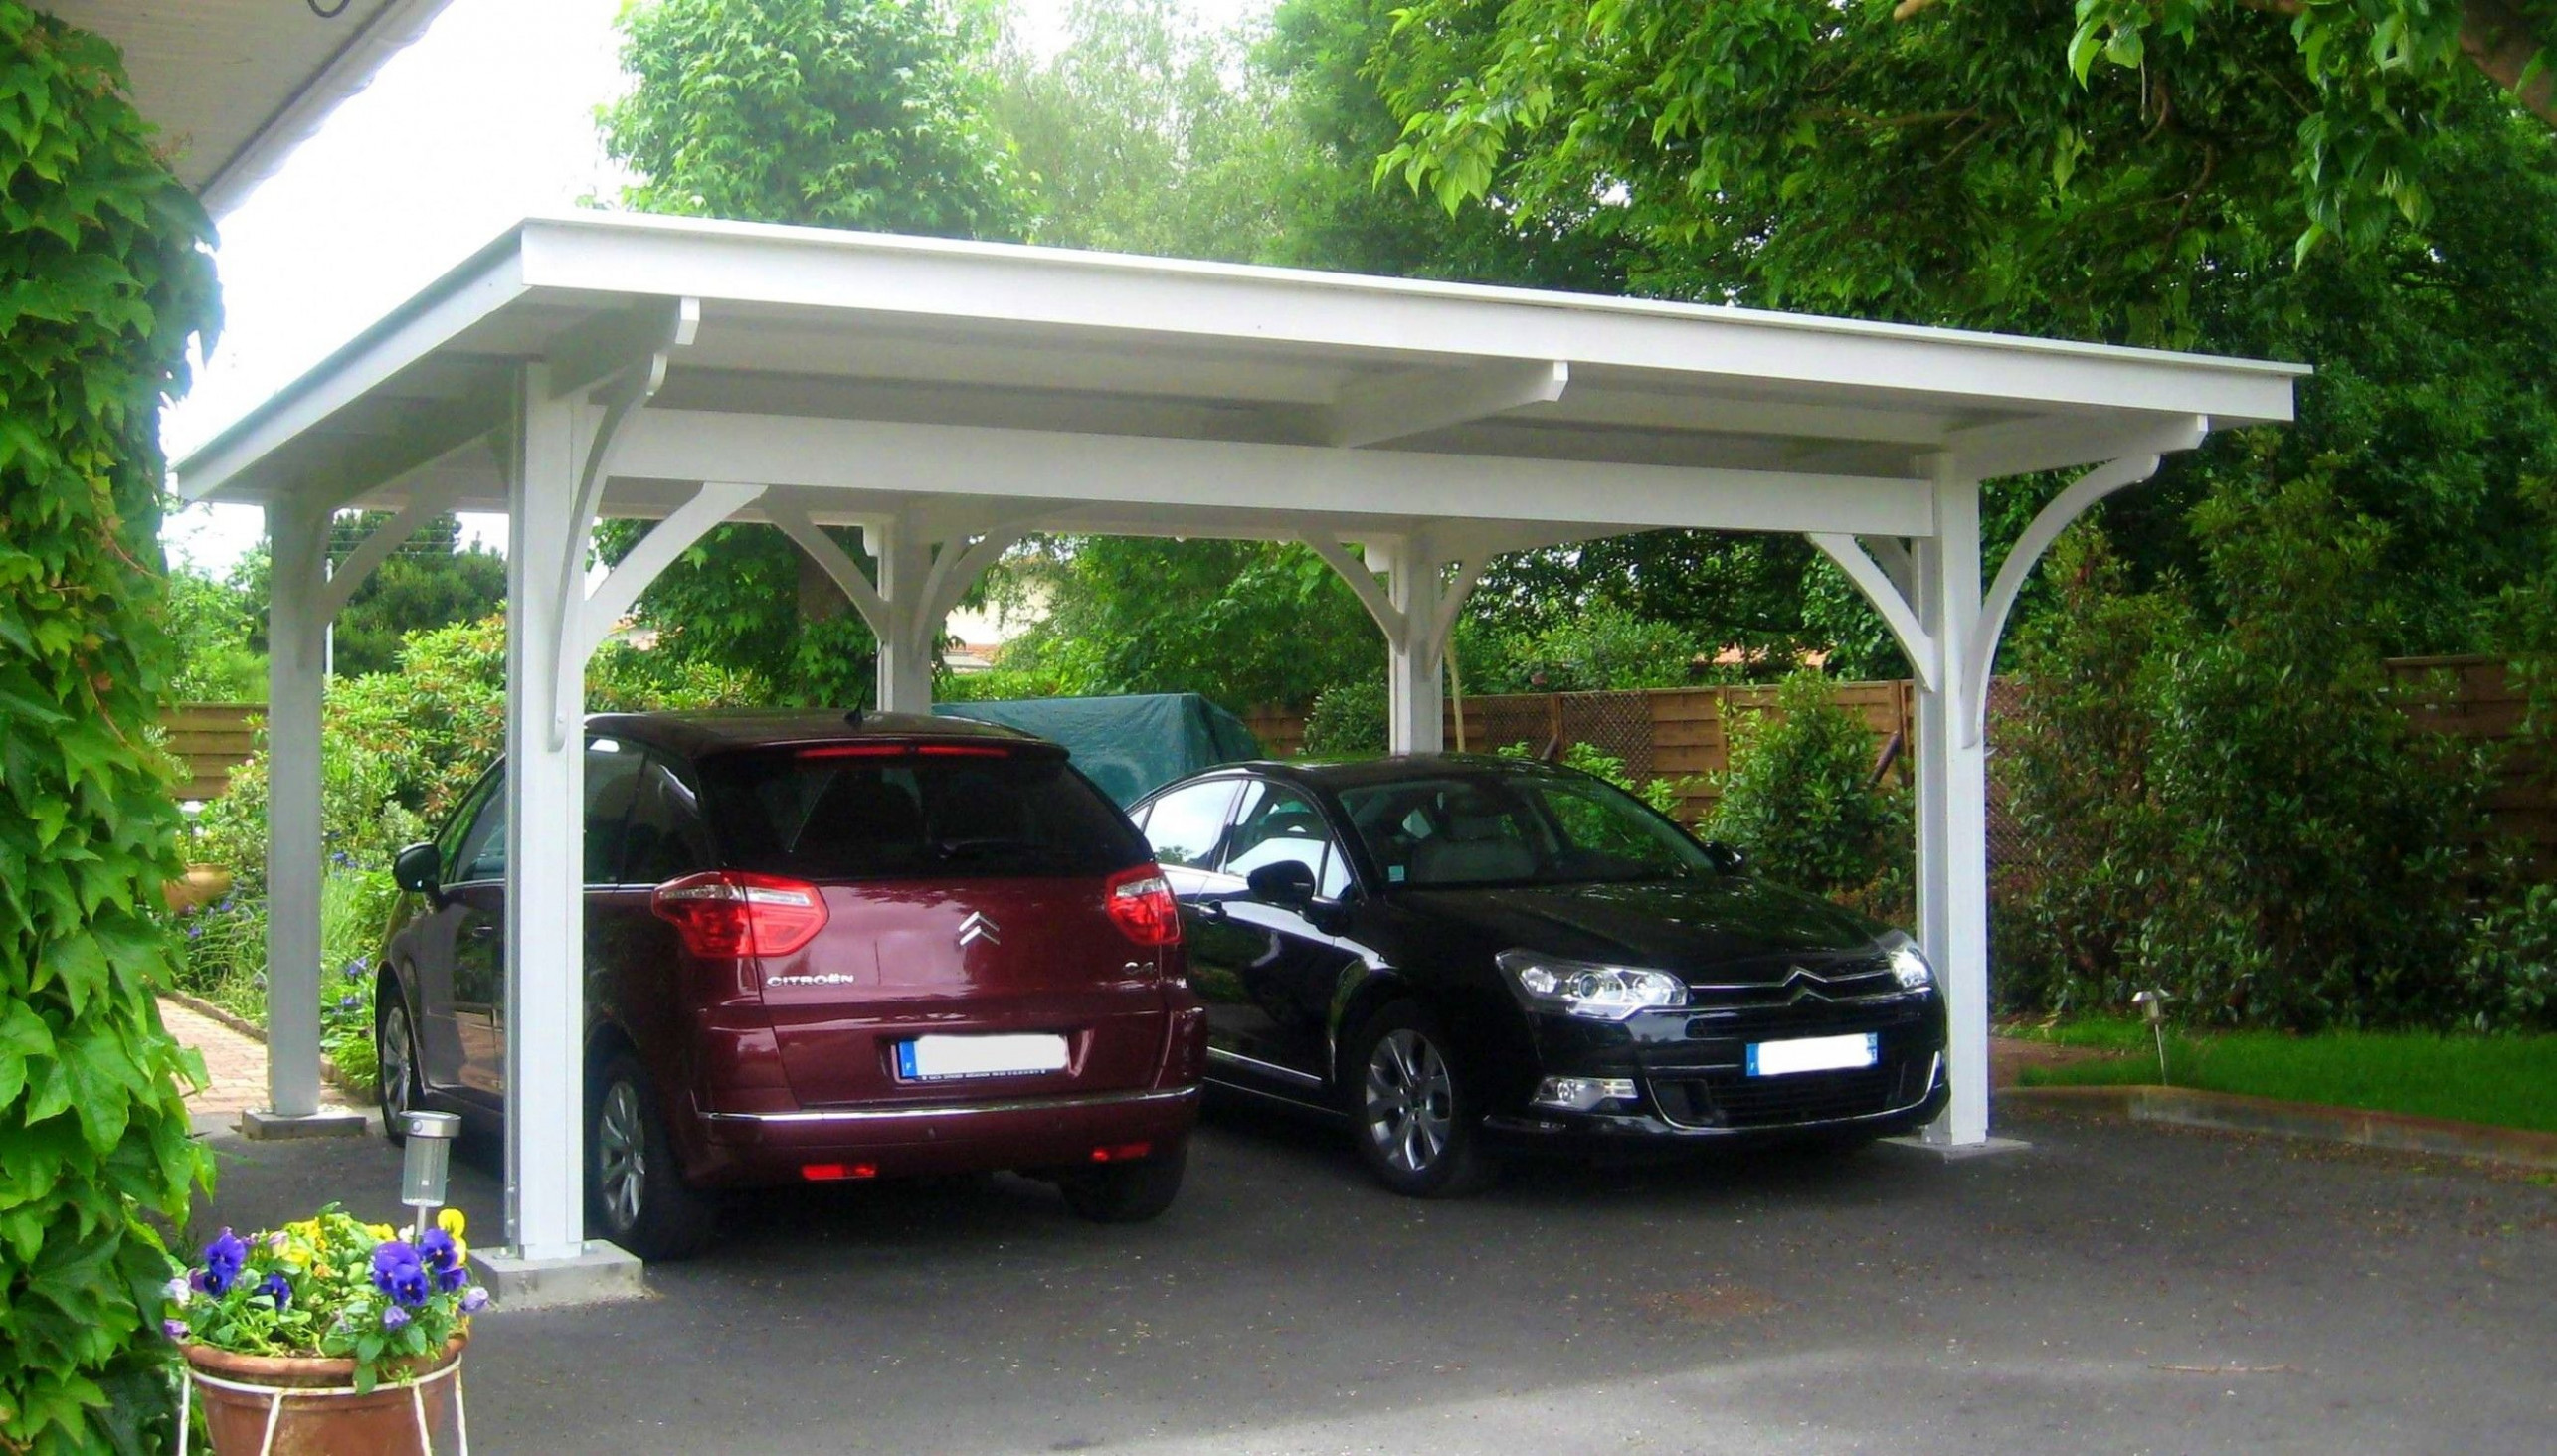 112 Exciting Parts Of Attending 112 Car Wood Carport Plans | 12 ..